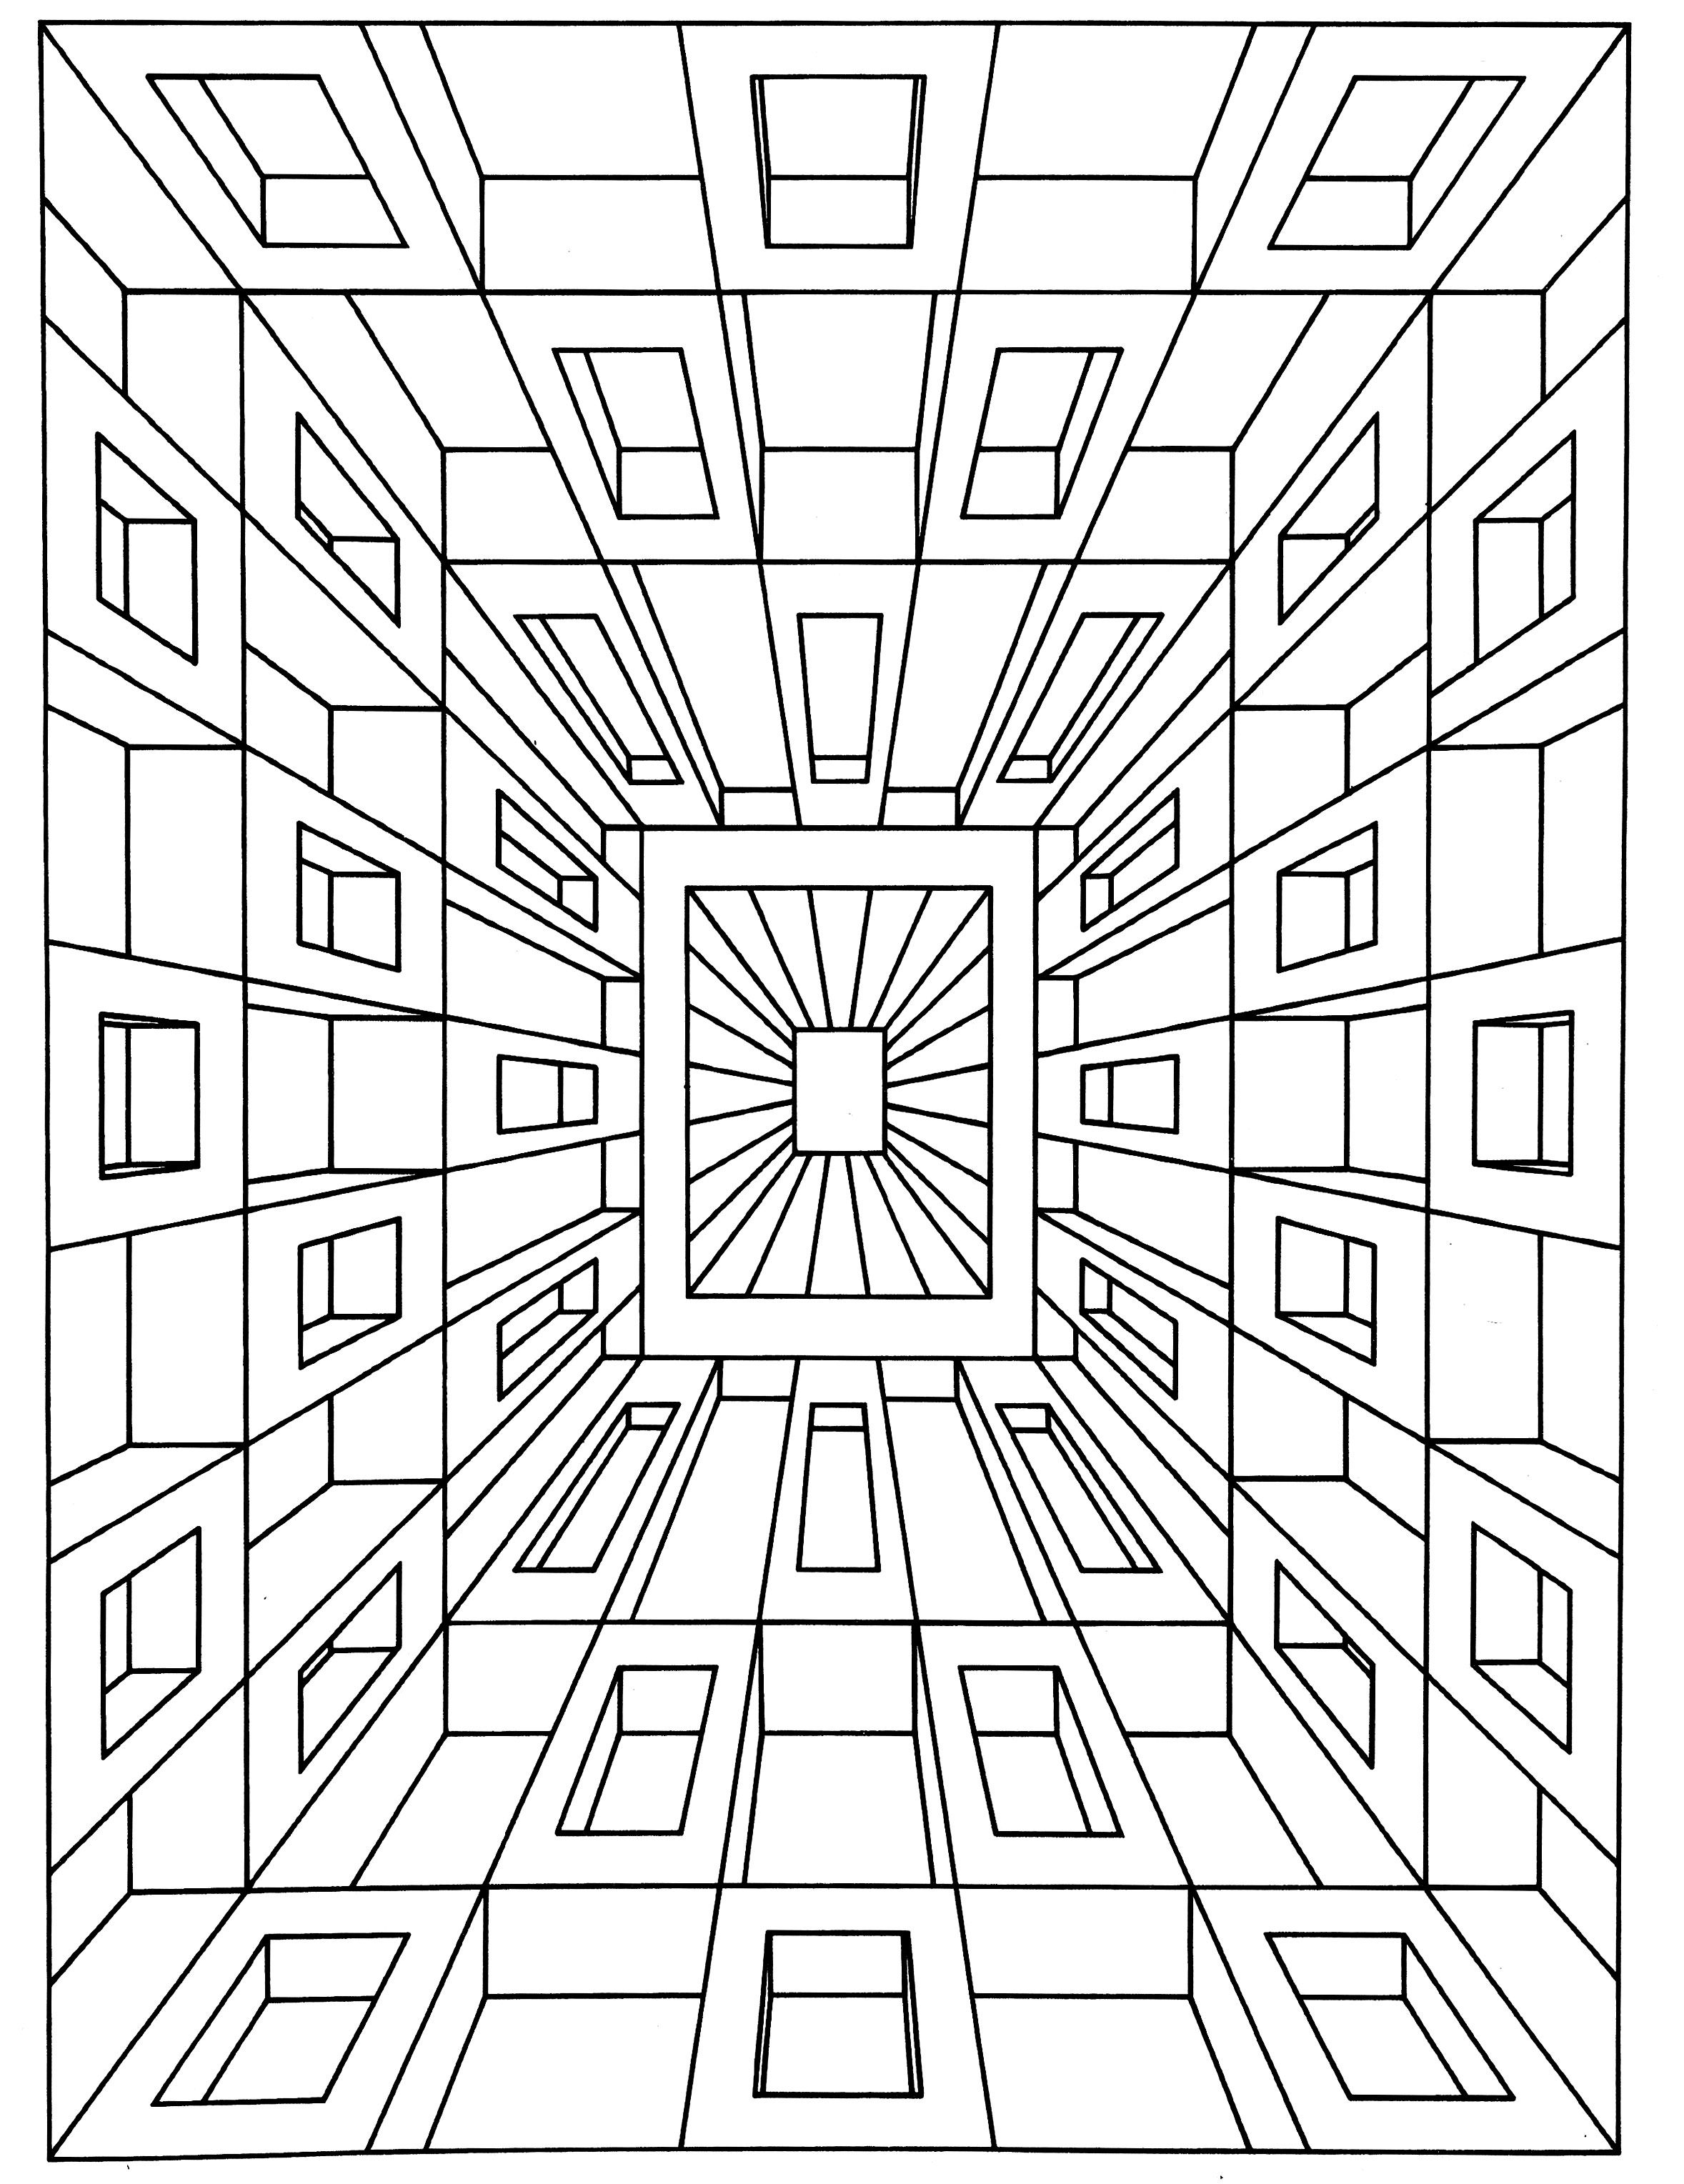 tessellation coloring pages free printable tessellation coloring pages free printable to print free pages coloring printable free tessellation